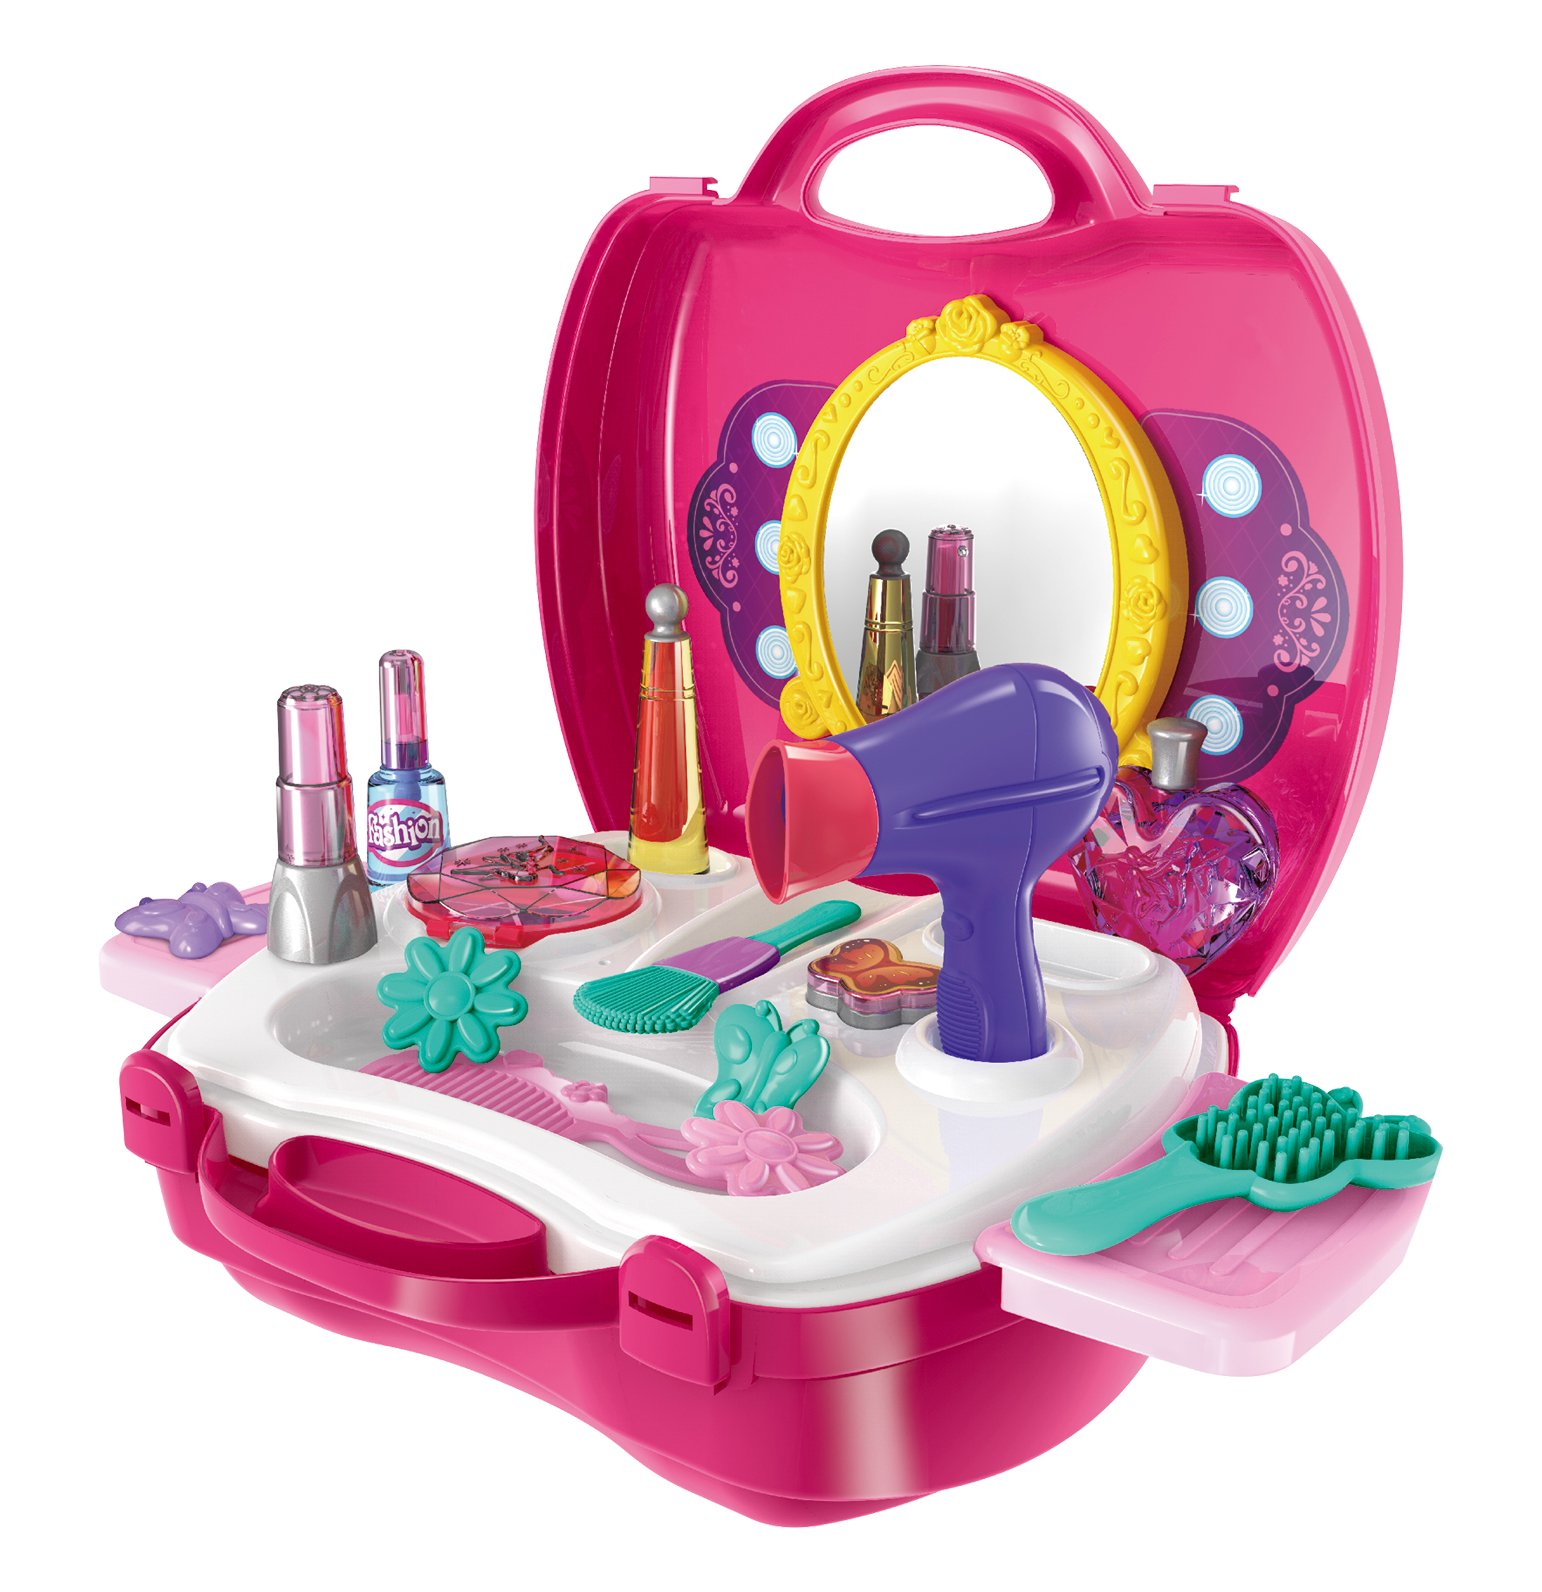 Chi Mercantile Portable Toy Salon Beauty Cosmetic Travel Vanity Play Set (21 Pieces)